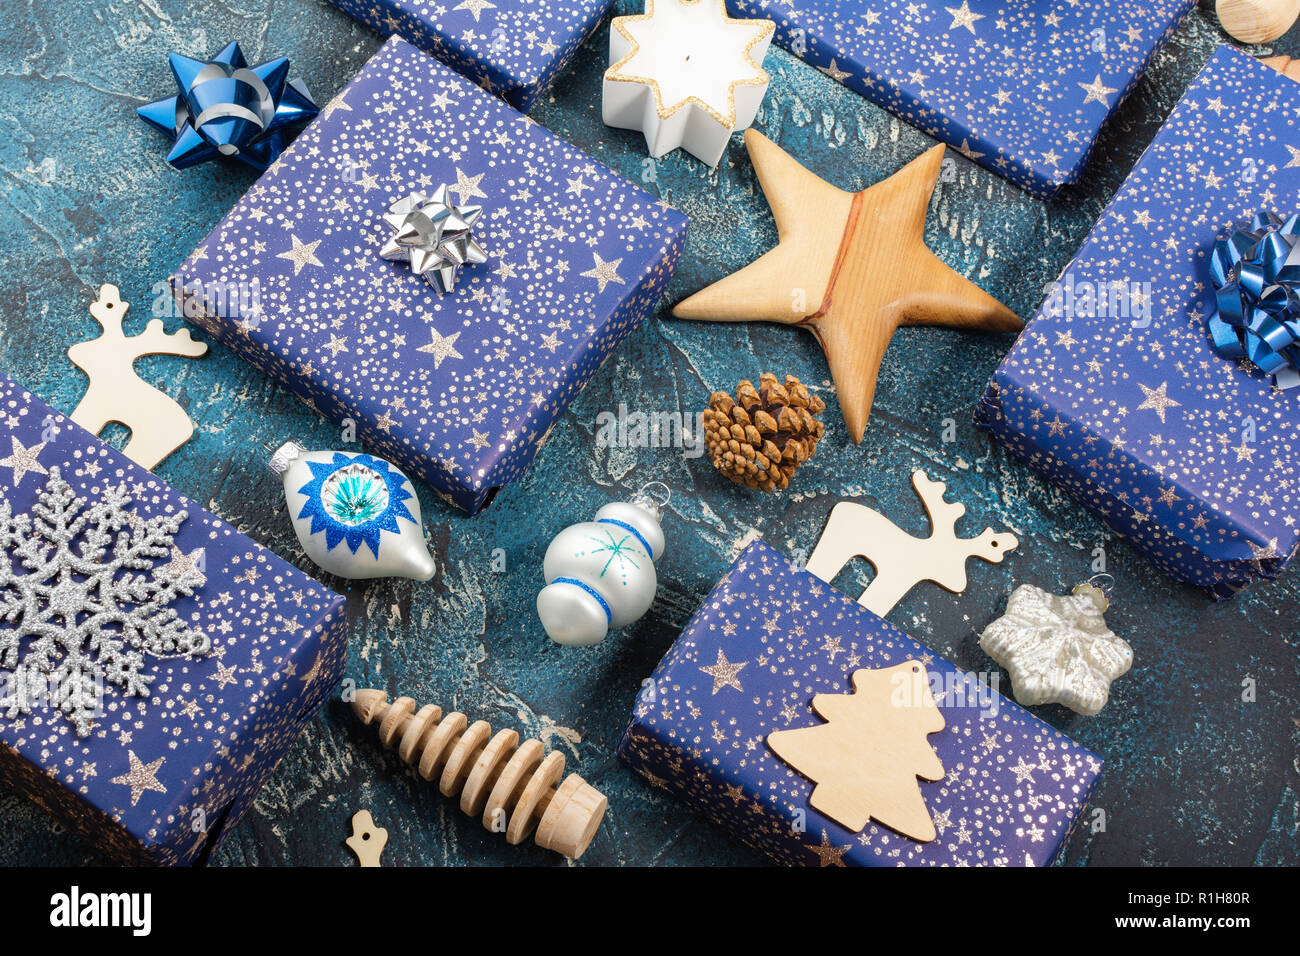 Christmas Decorations Blue Gold Baubles Stock Photos